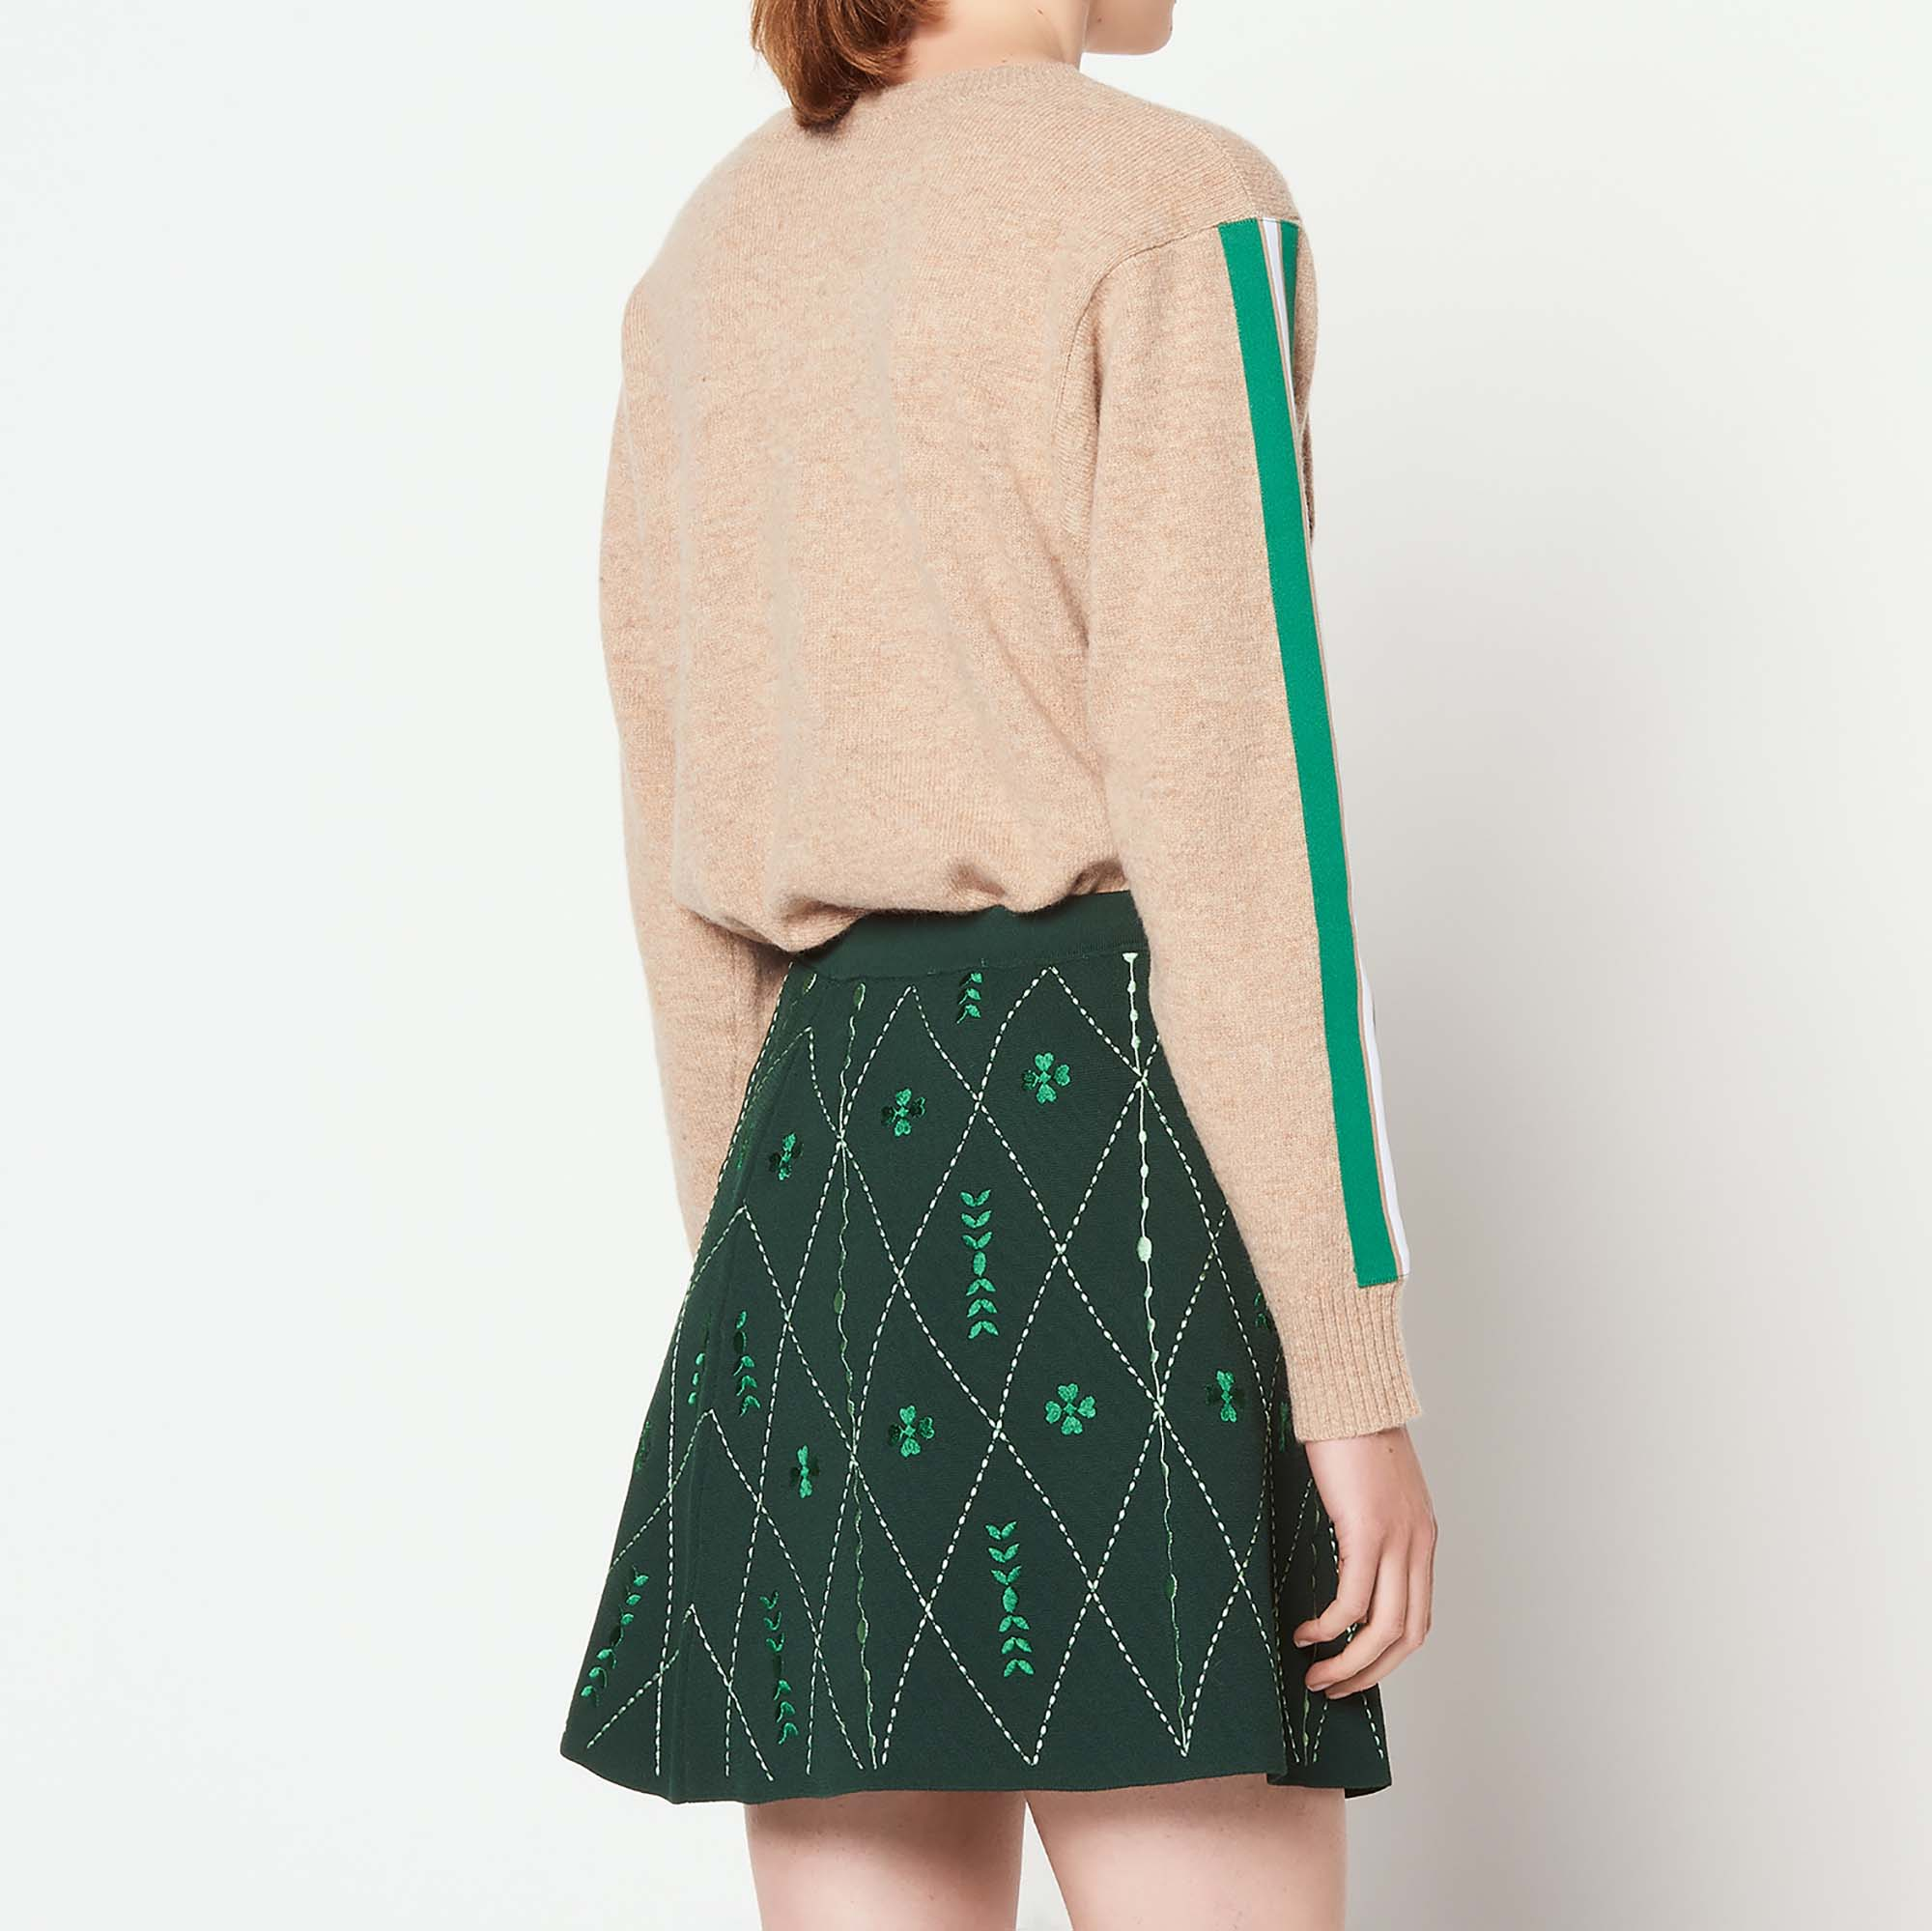 d39b86258 ... Short embroidered knit skirt : Skirts color Chlorophyll ...